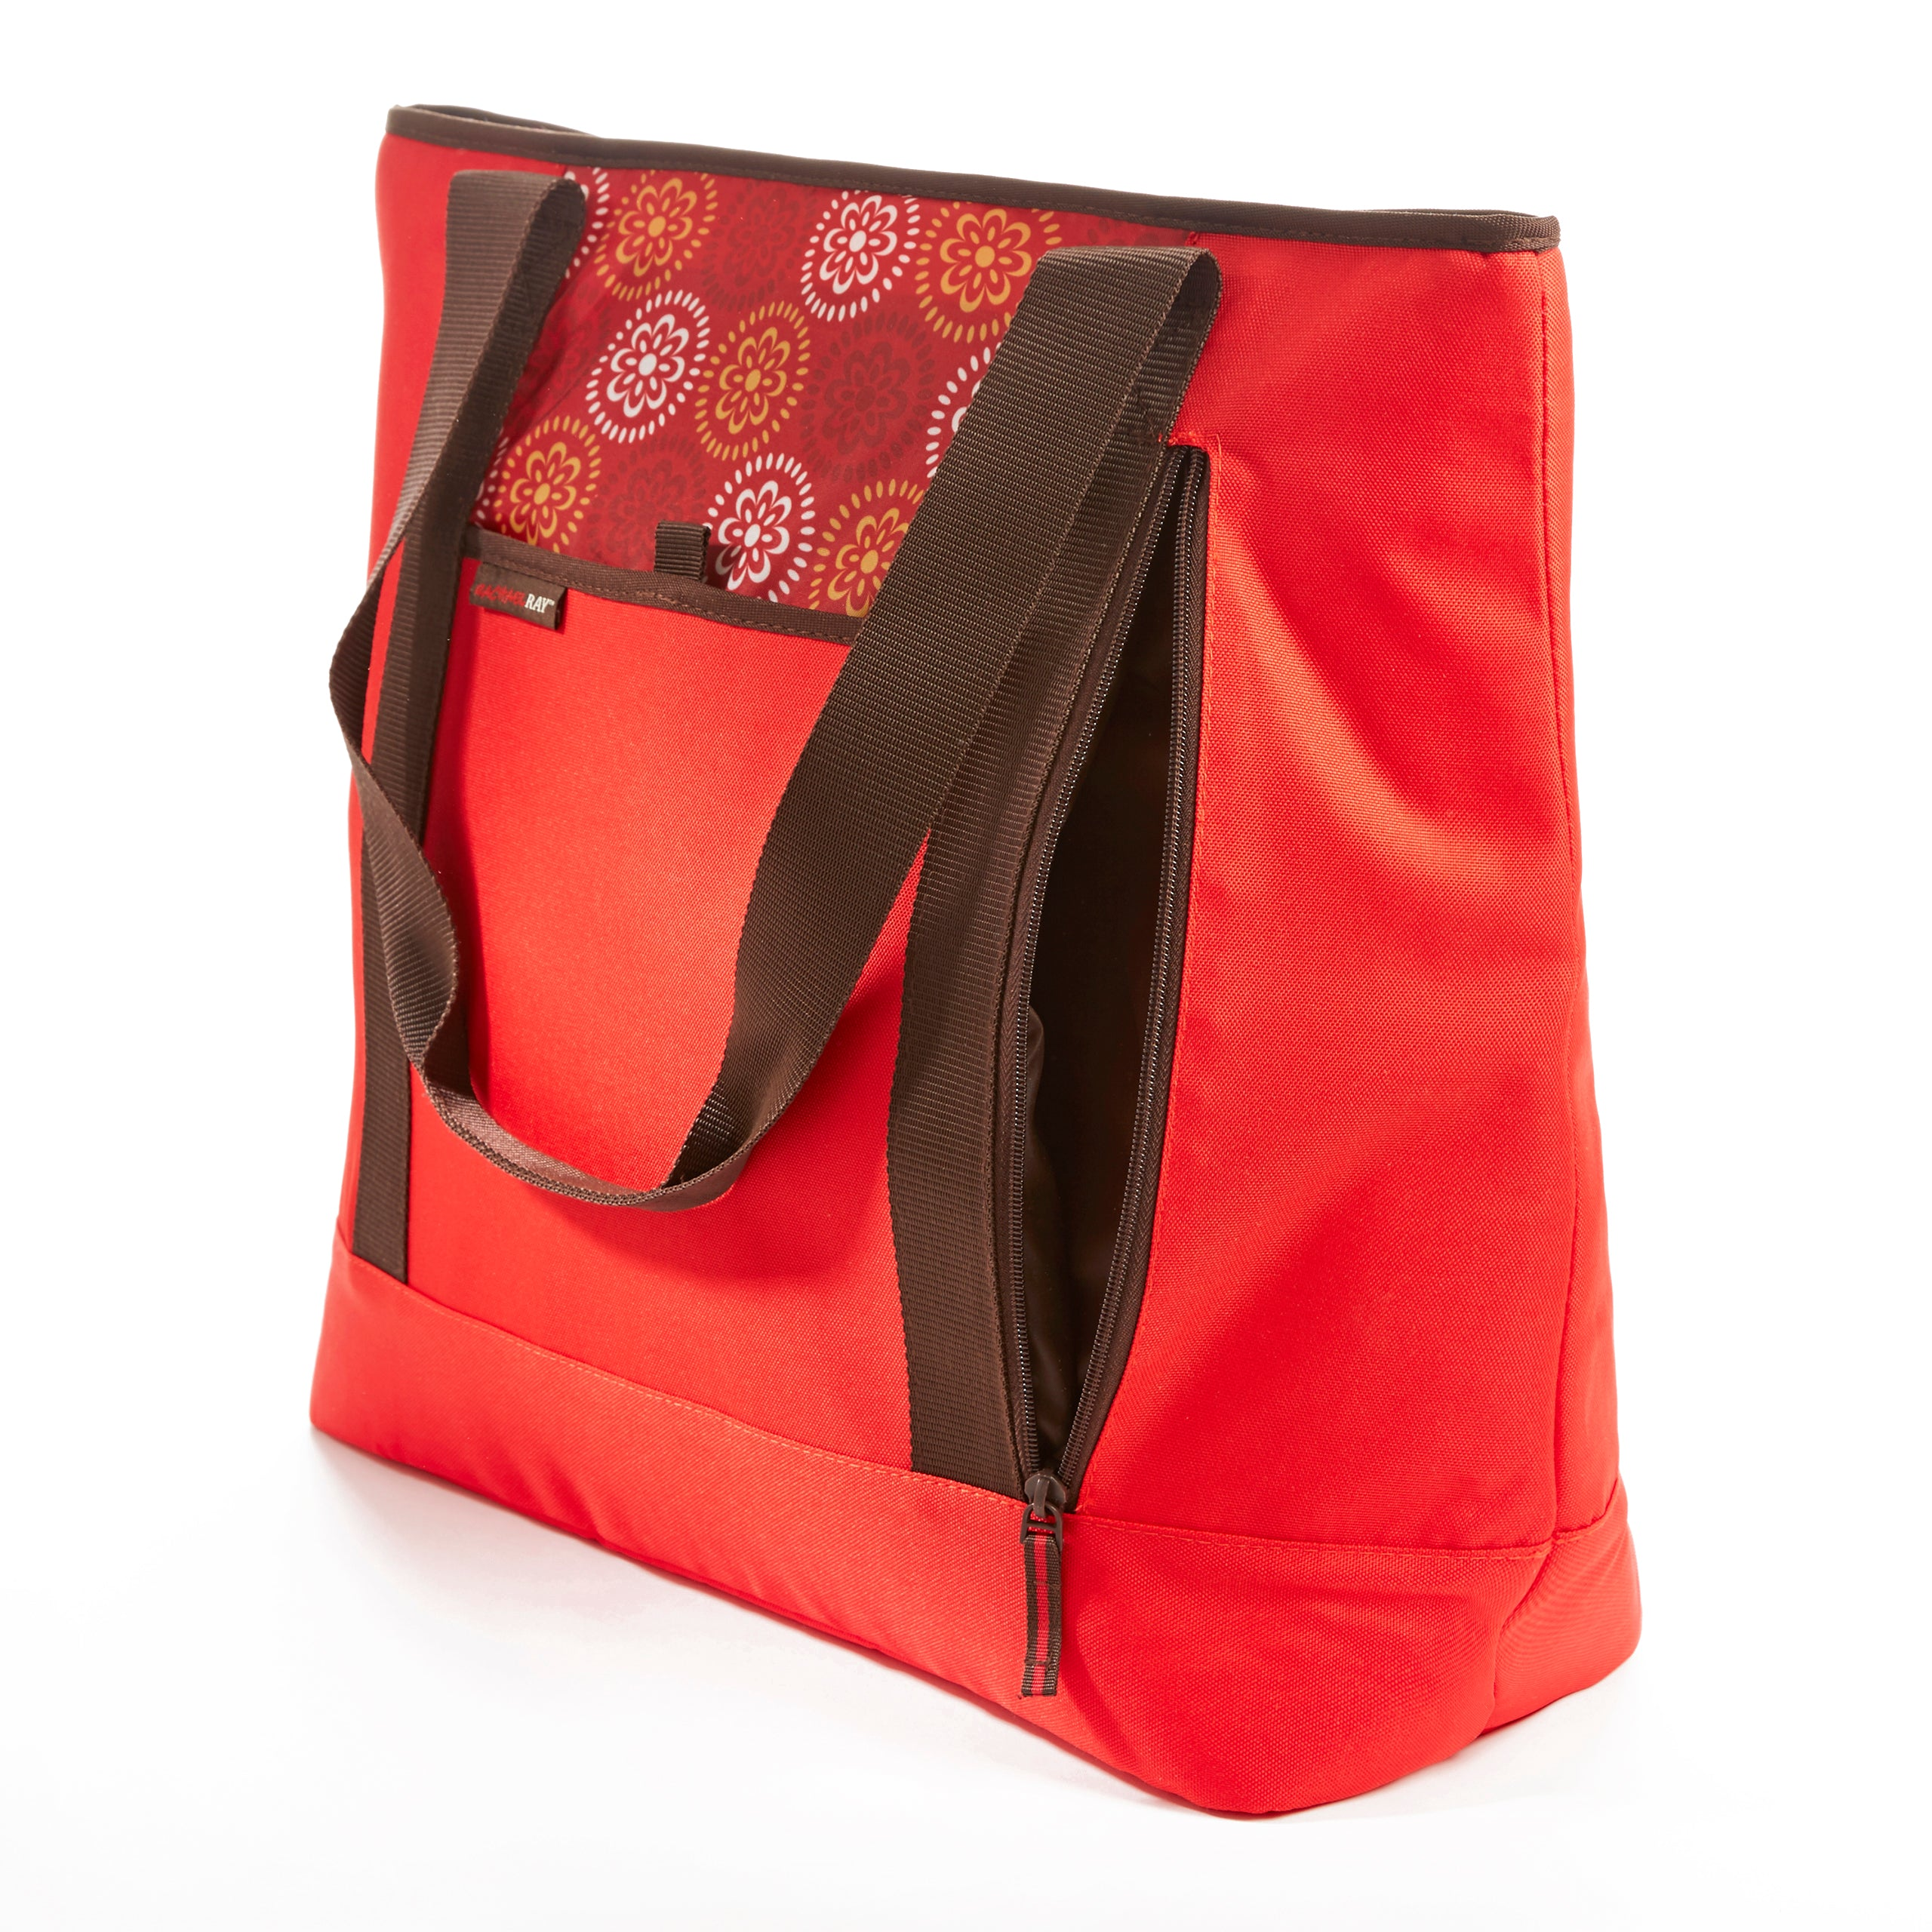 Rachael Ray Chillout Shopper Tote Insulated Grocery Bag